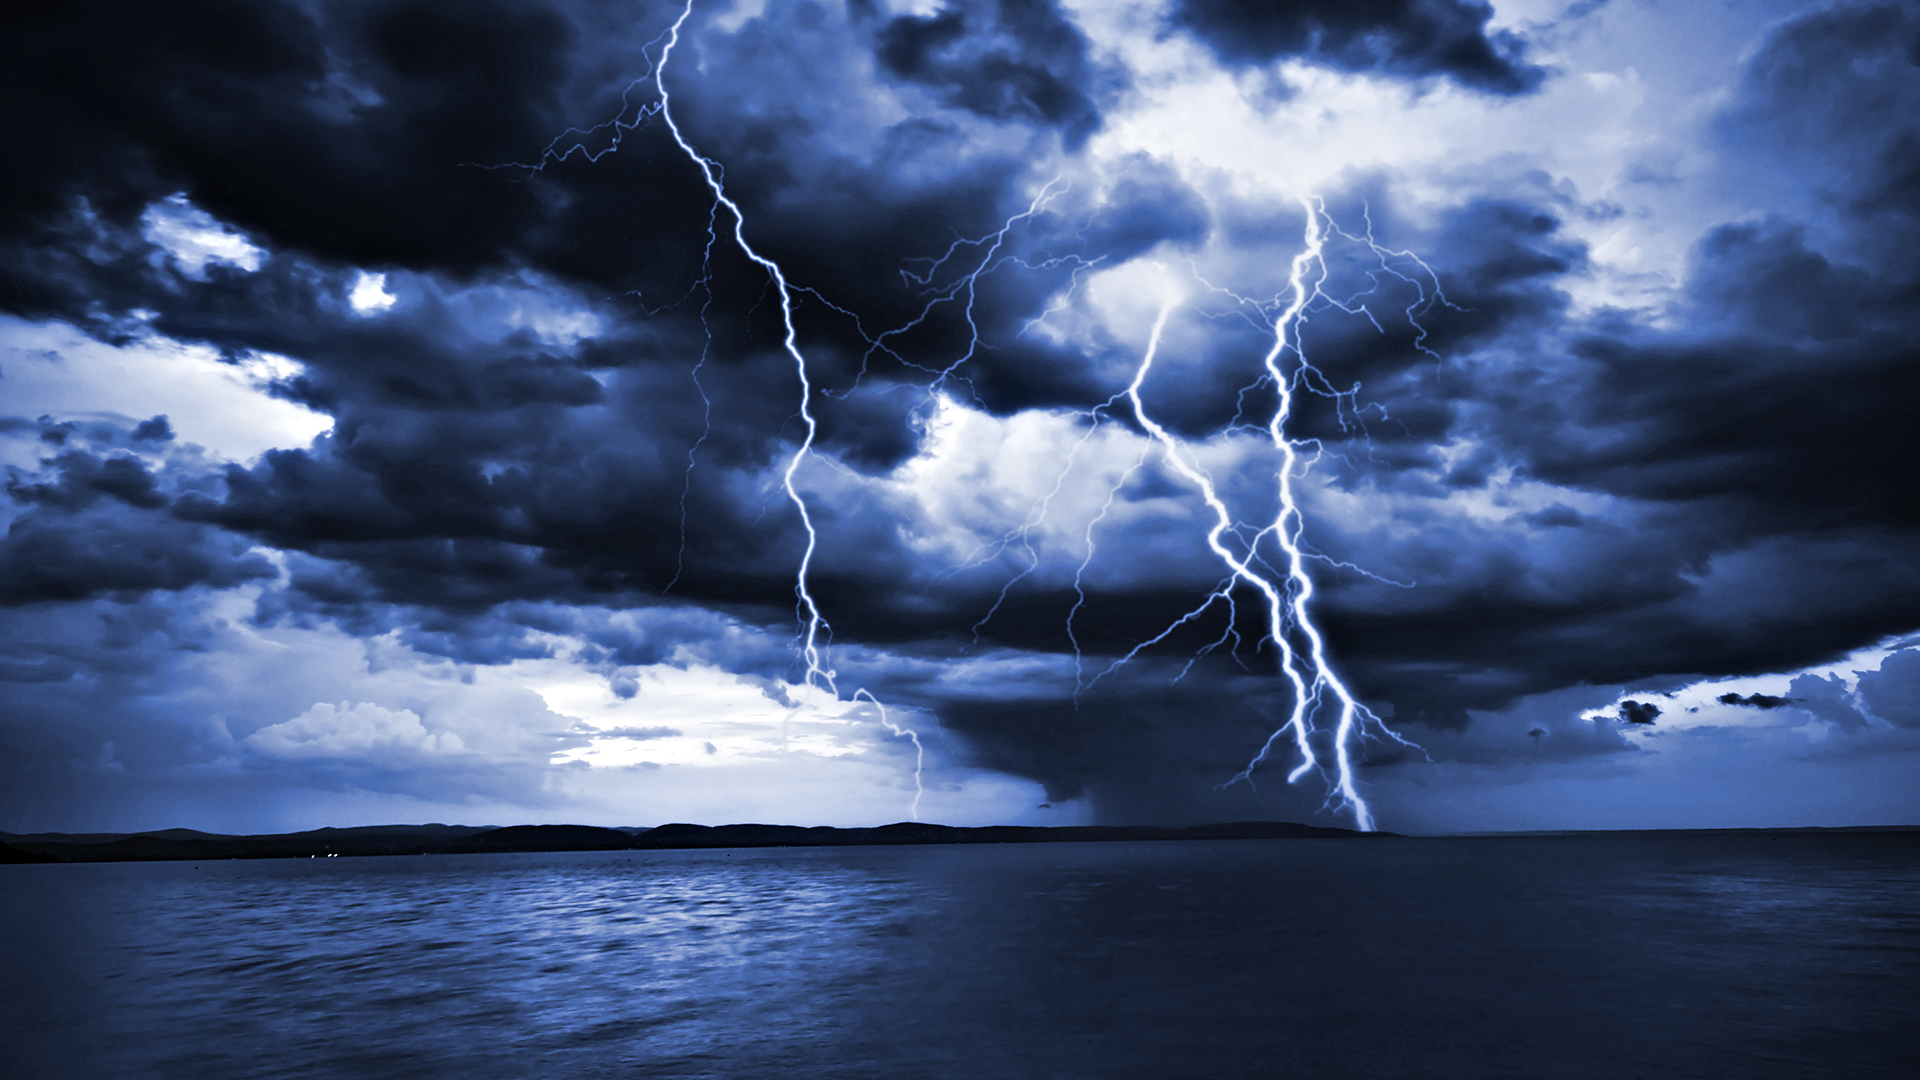 Hd awesome lightning wallpaper wallpaper download voltagebd Image collections